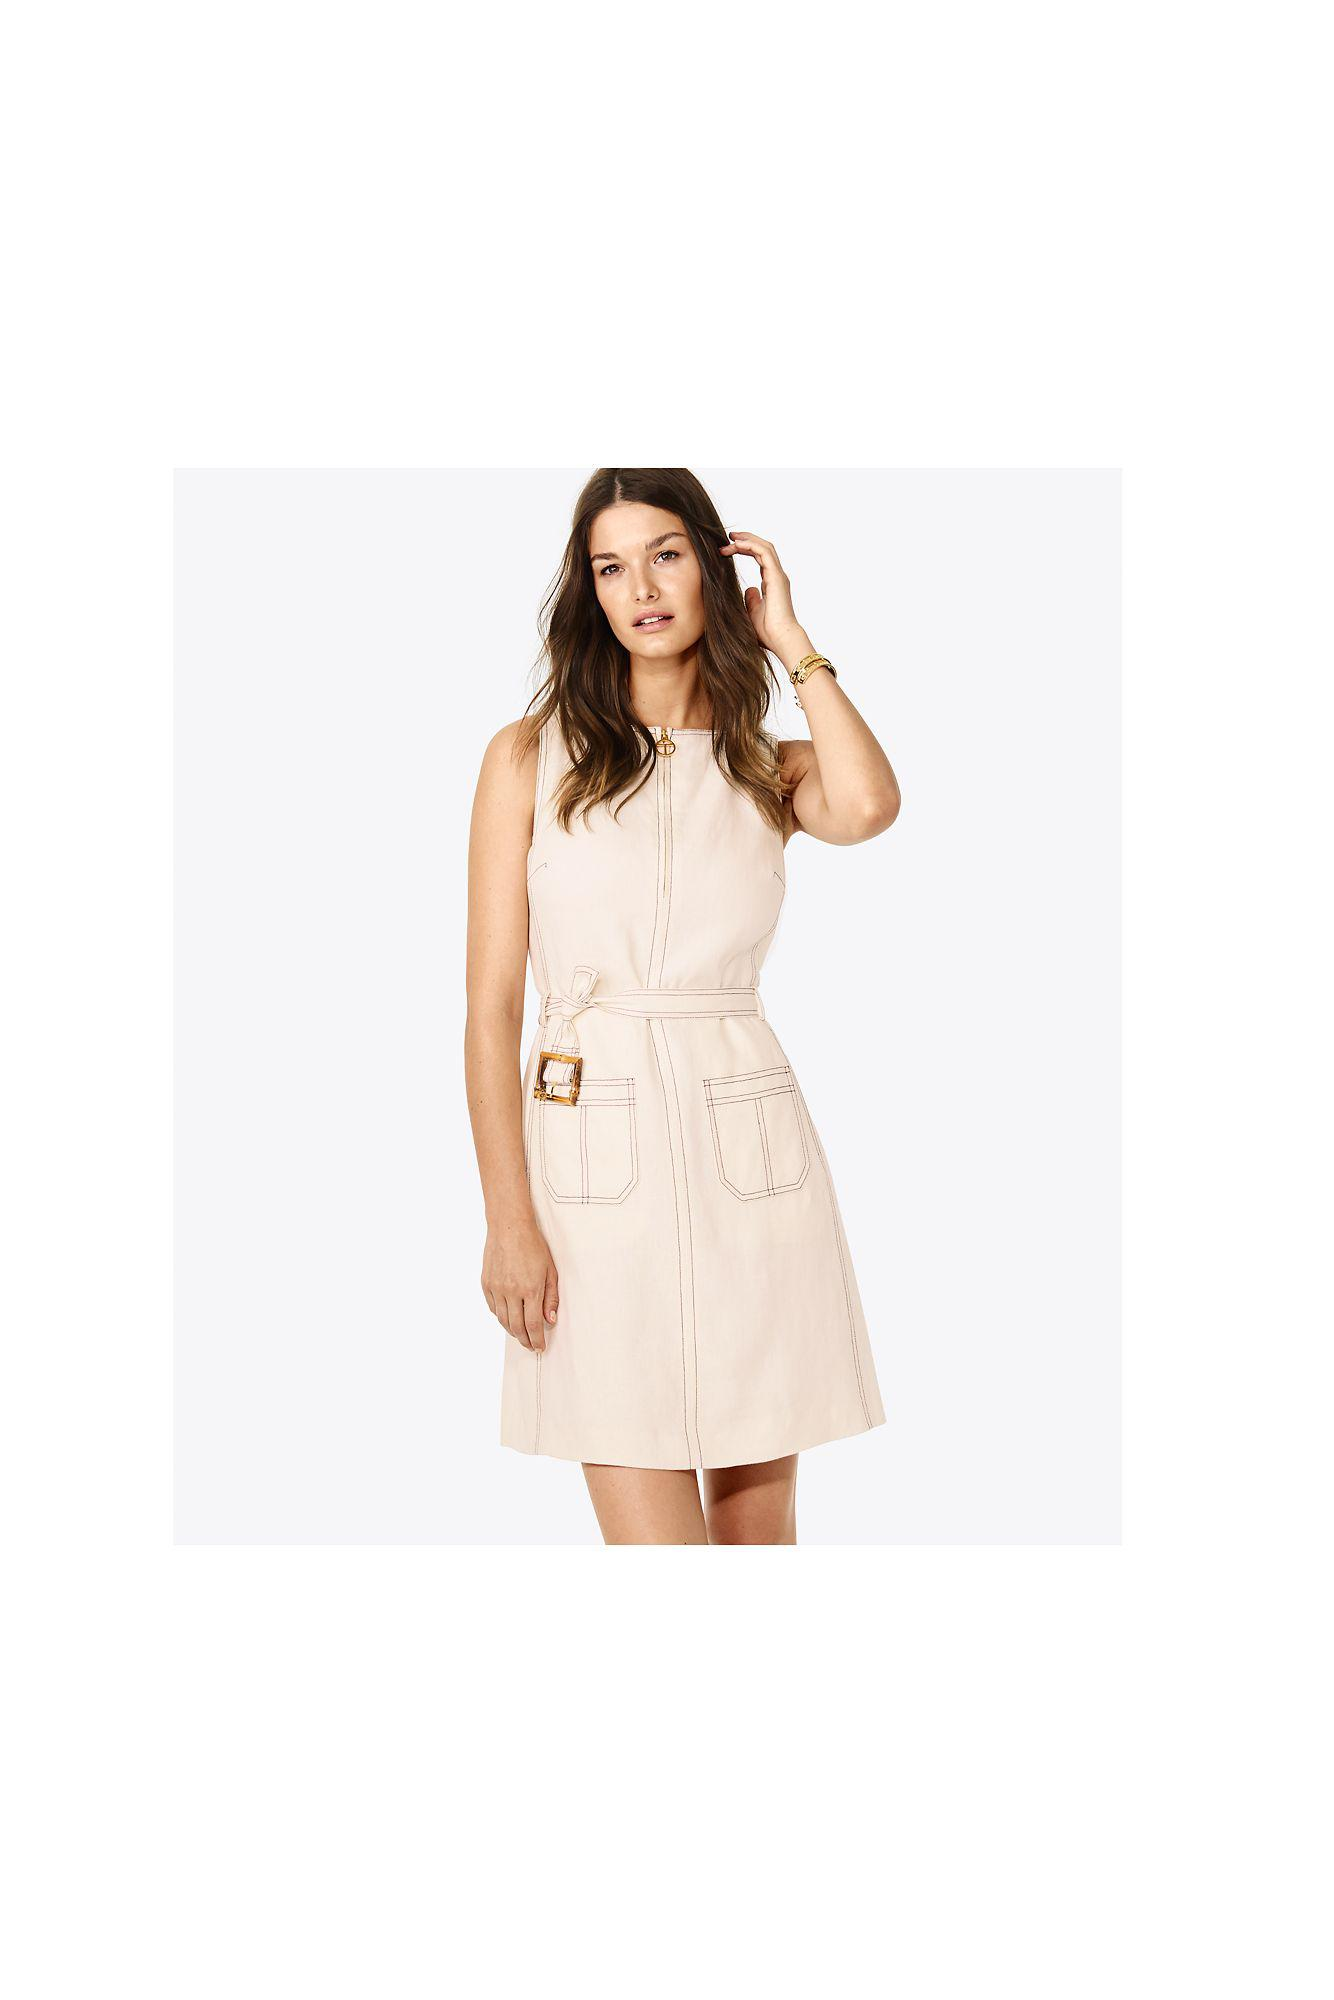 860f8383a7d Lyst - Tory Burch Nadia Dress in White